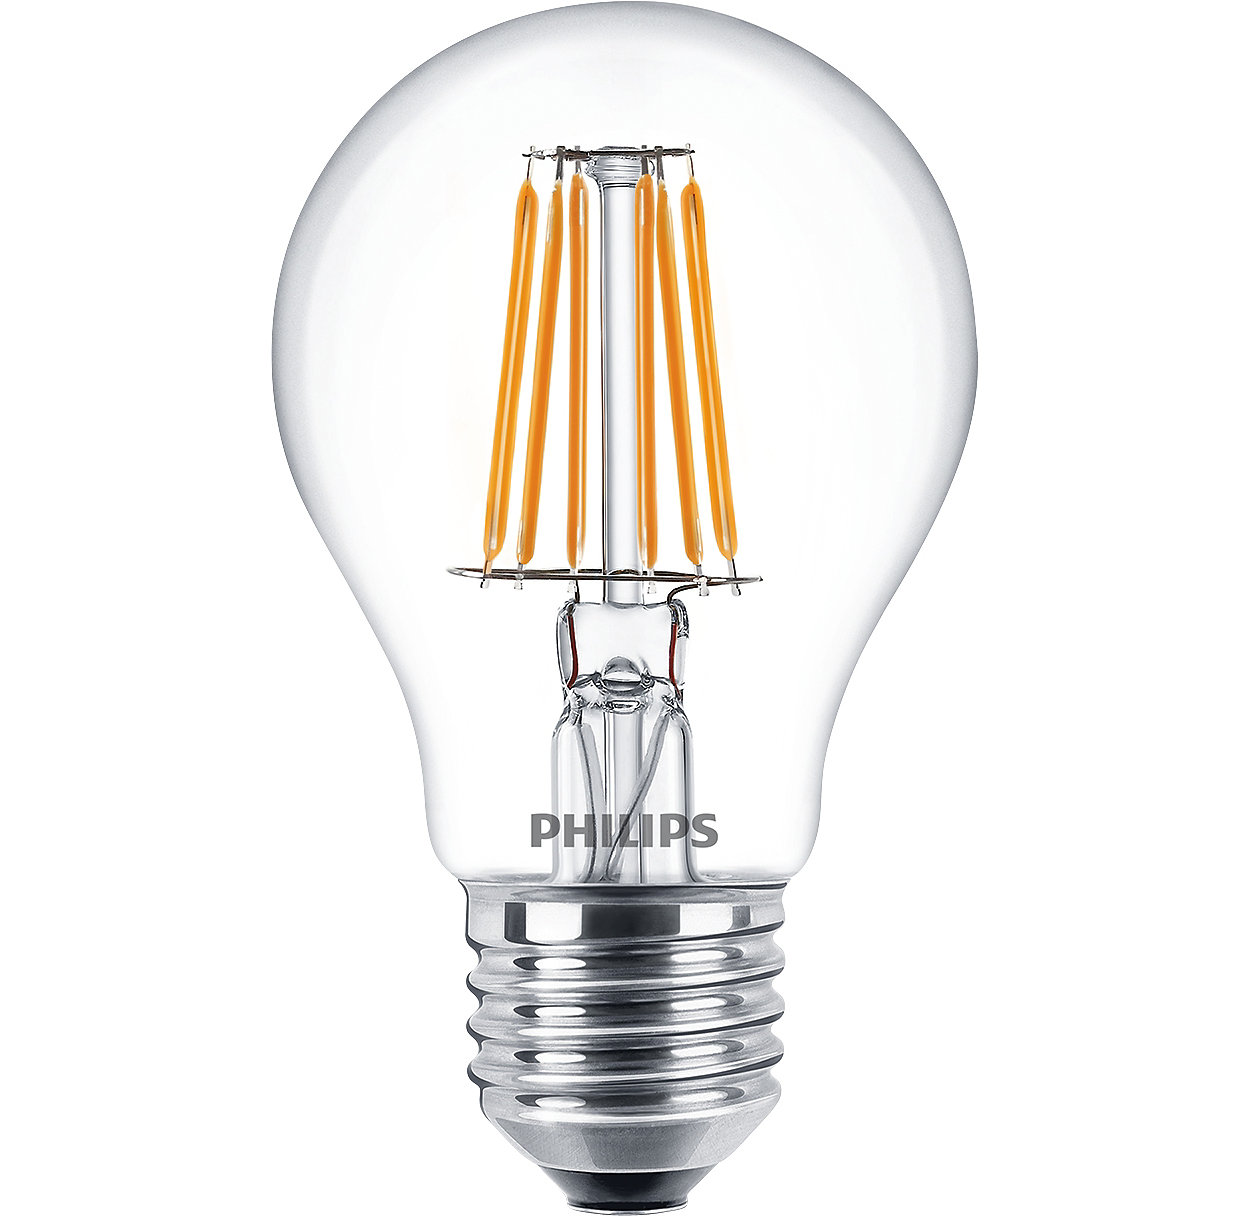 Classic LED filament lamps for decorative lighting